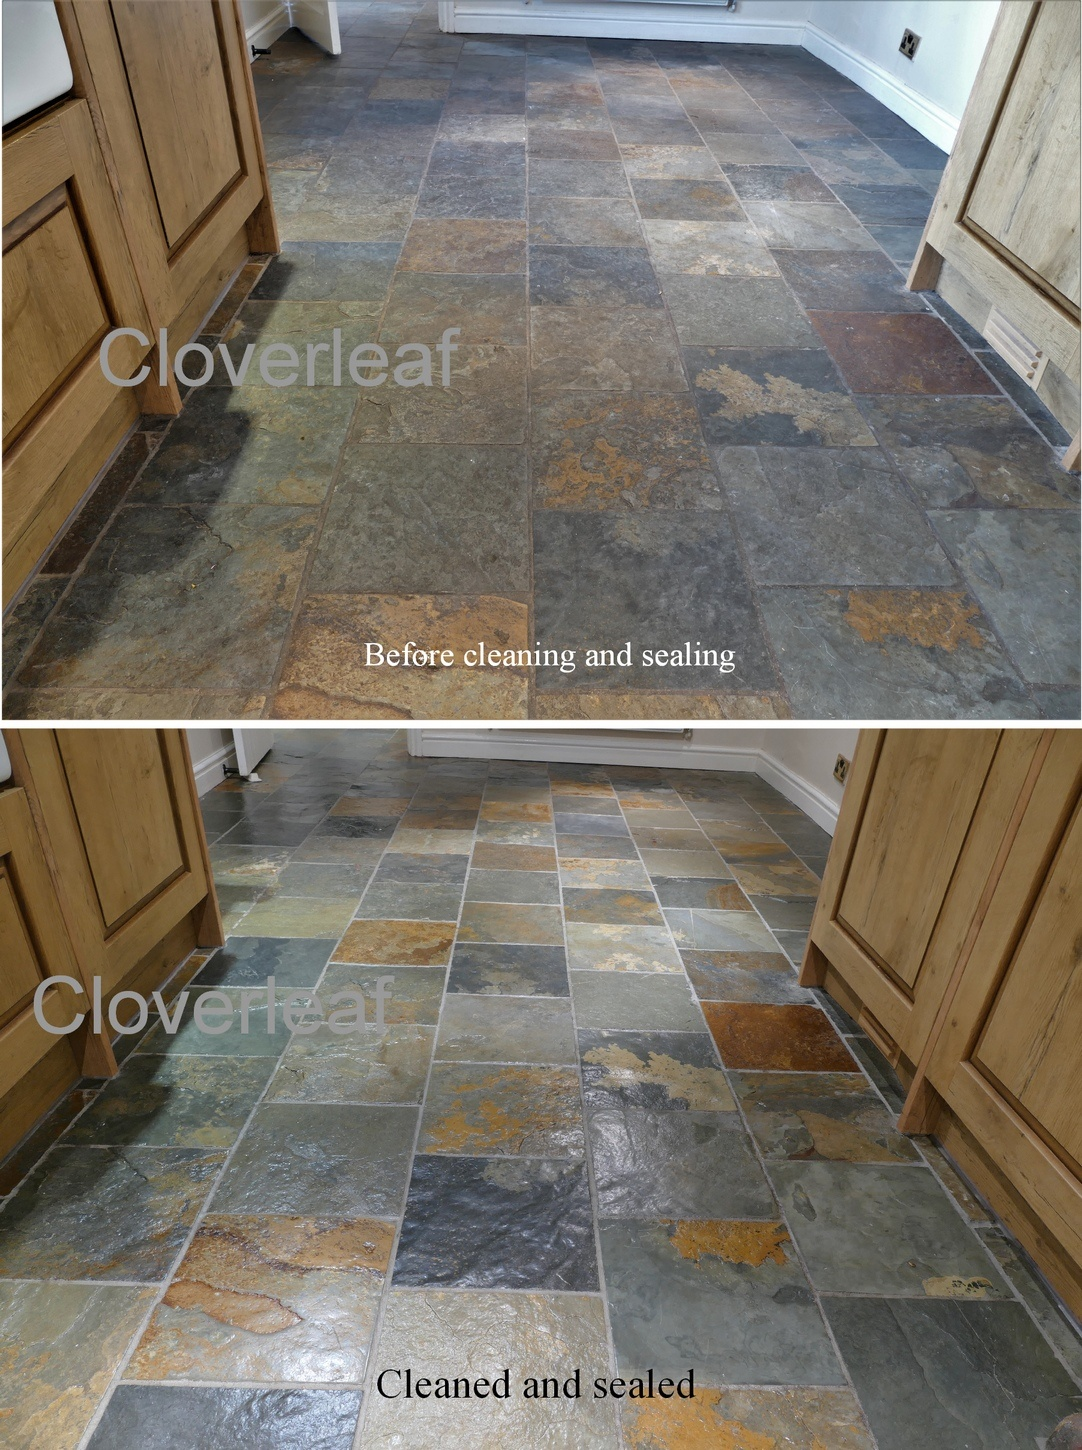 Slate floor cleaning and sealing service in cheshire slate floor cleaning middlewich sandbach holmes chapel doublecrazyfo Image collections